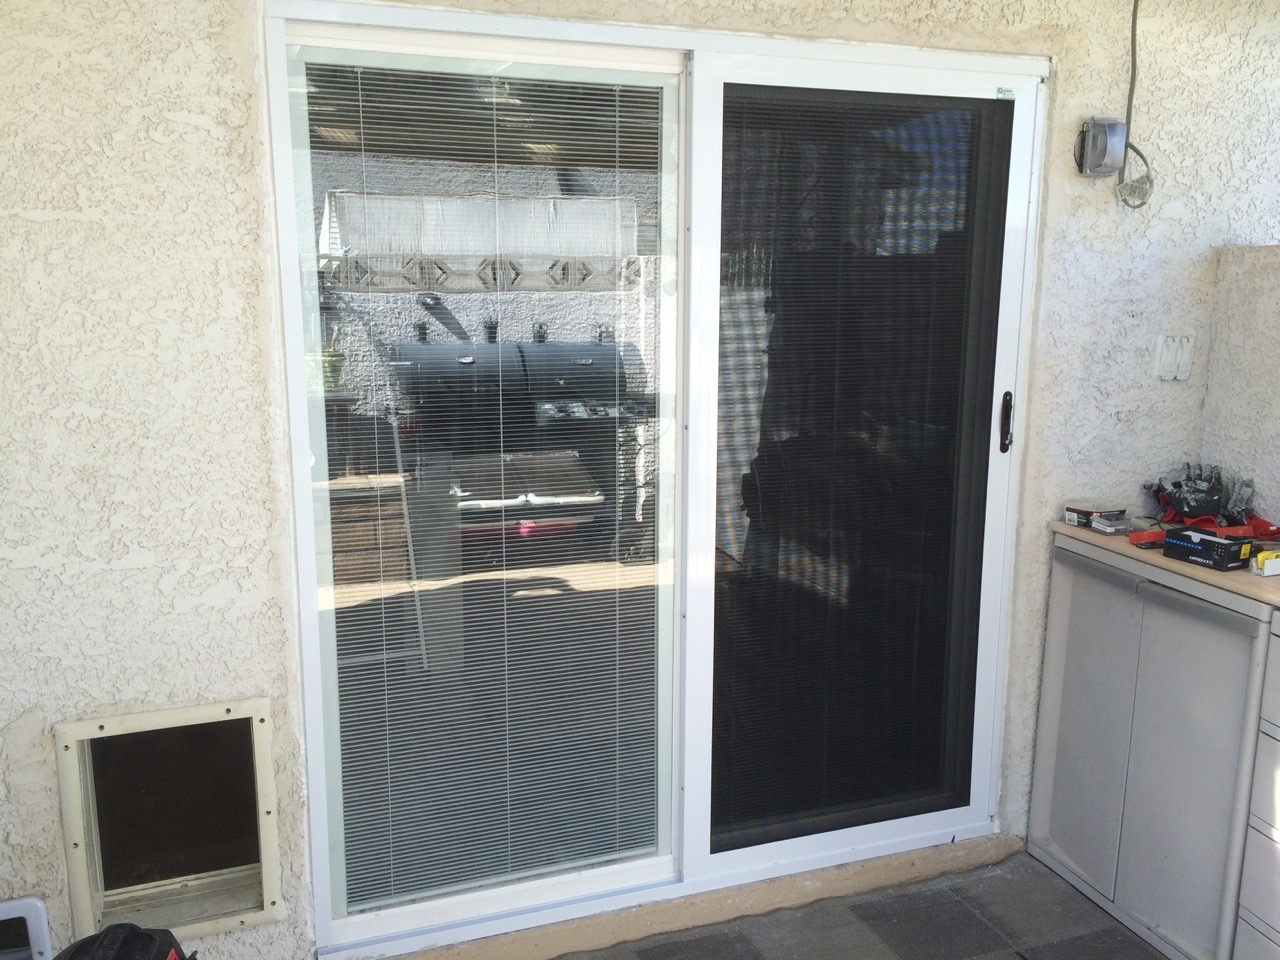 Security Screen Doors, Well That Don't Look Like Security. Universal Garage Door Remotes. Garage Door Opener For Sale. Two Door Used Cars For Sale. Weather Strip French Doors. Garage Door Manual. Door Handles For Closets. Garage Door Repair Glenview Il. Fireplace Screen With Doors